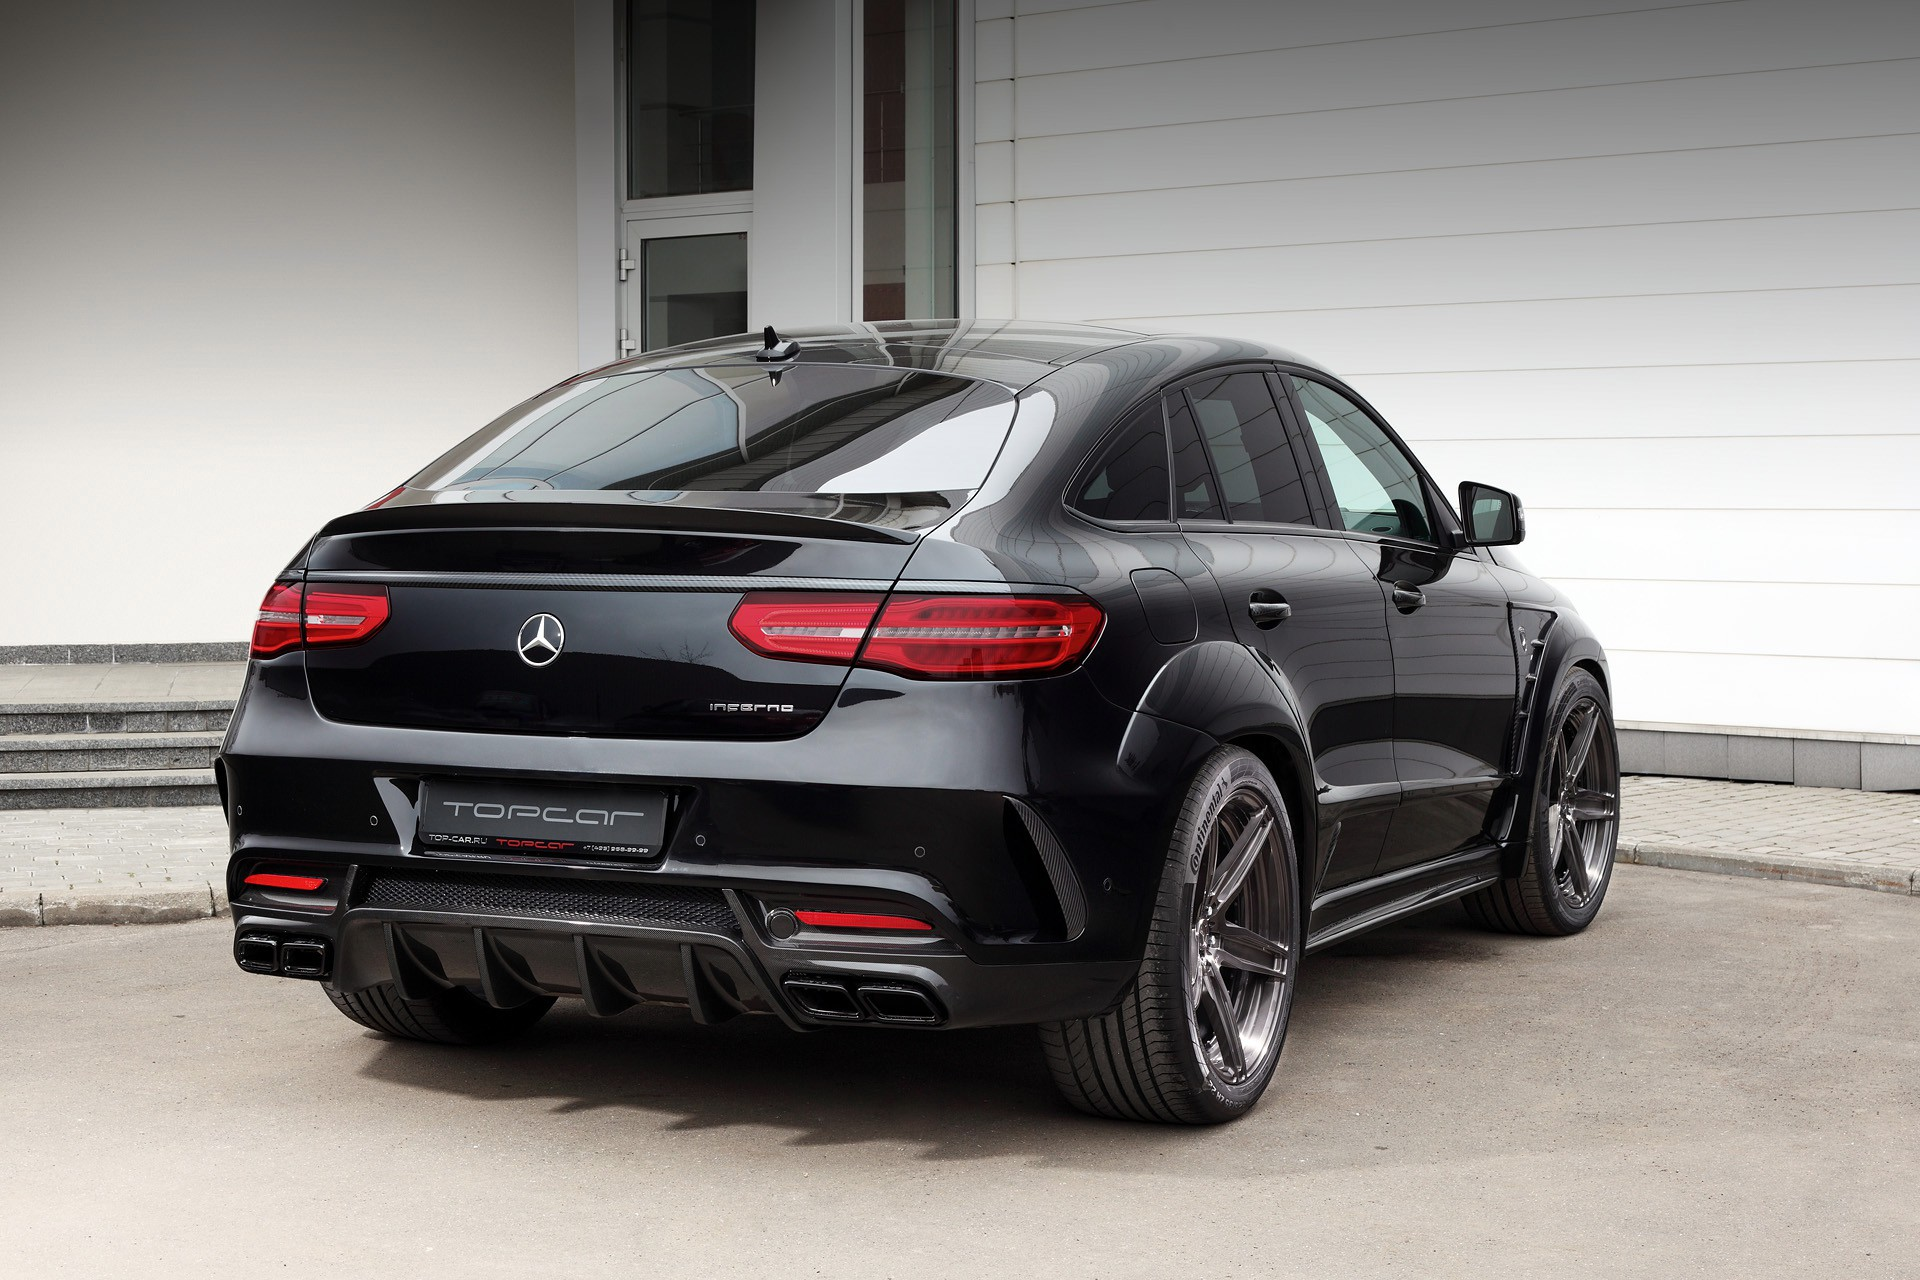 topcar equips the mercedes amg gle 63 with an inferno bodykit. Black Bedroom Furniture Sets. Home Design Ideas